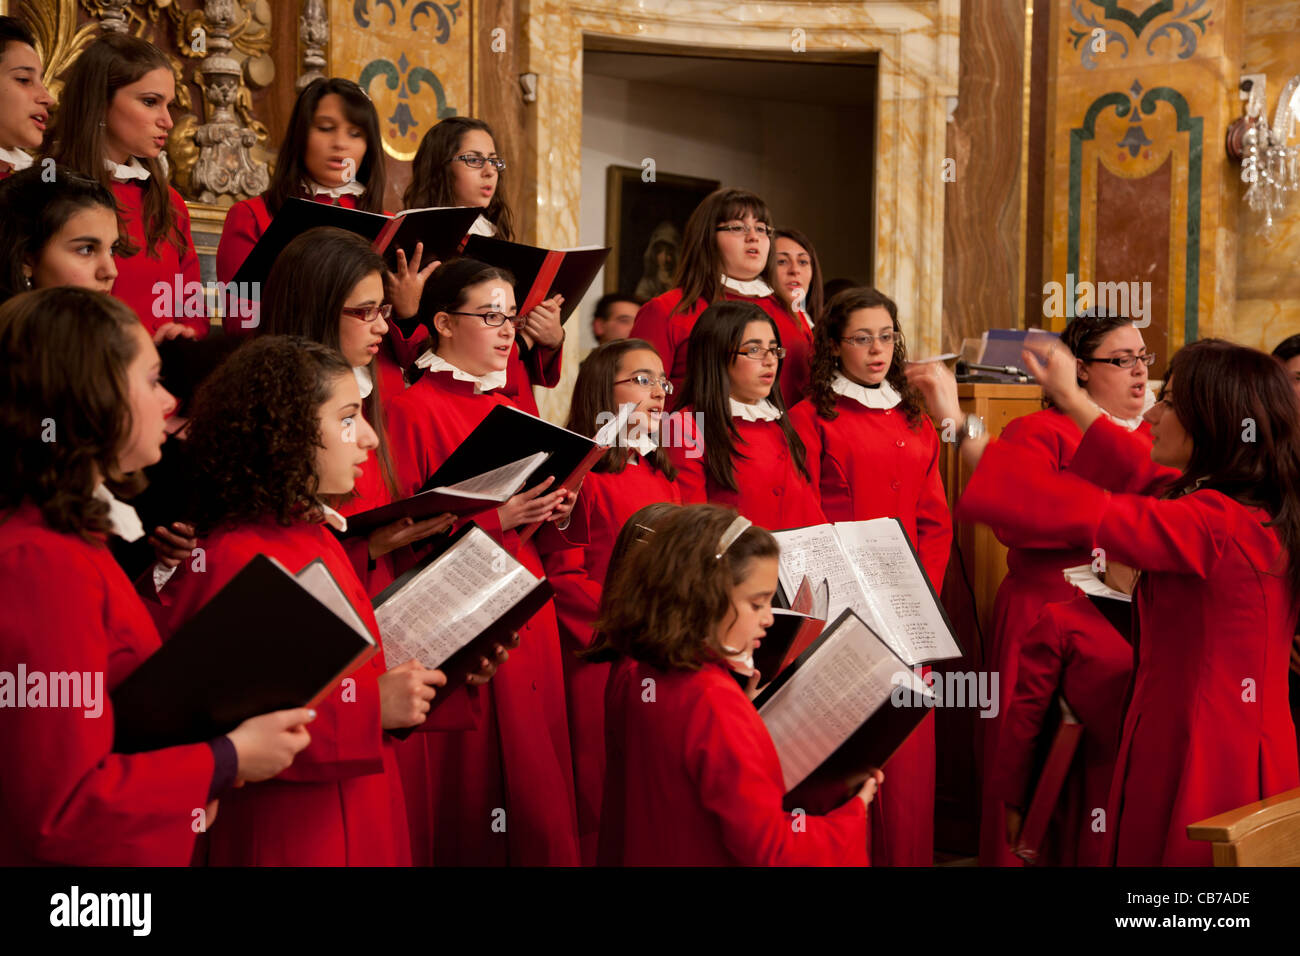 A choir singing during the High Mass at the stroke of midnight on Christmas Eve in the town of Xaghra in Gozo in - Stock Image